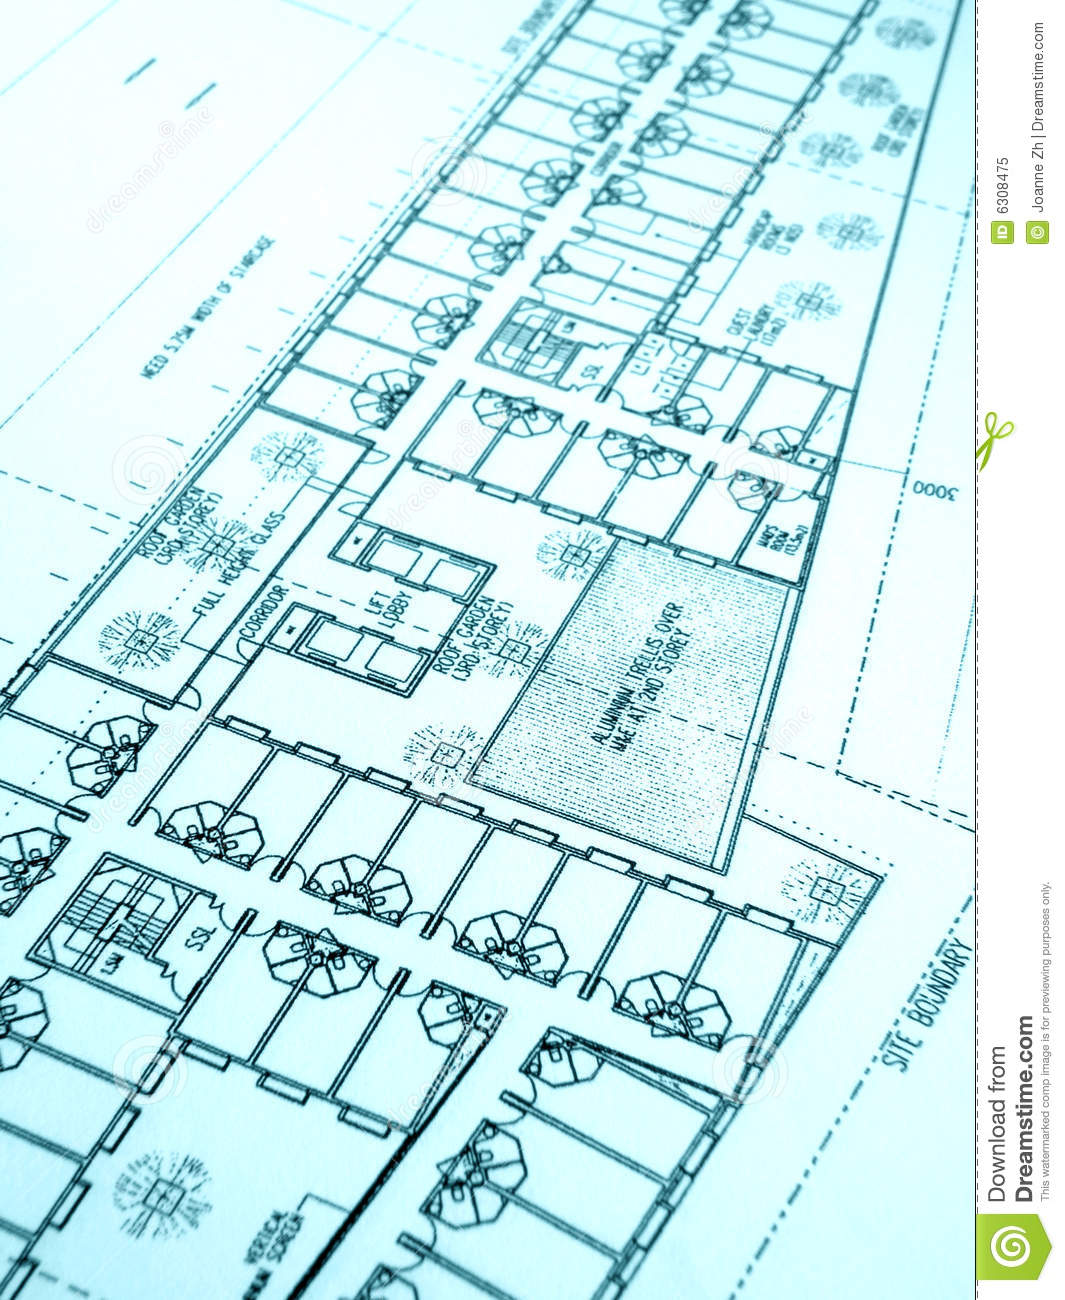 Construction plan office building royalty free stock for Building layout plan free